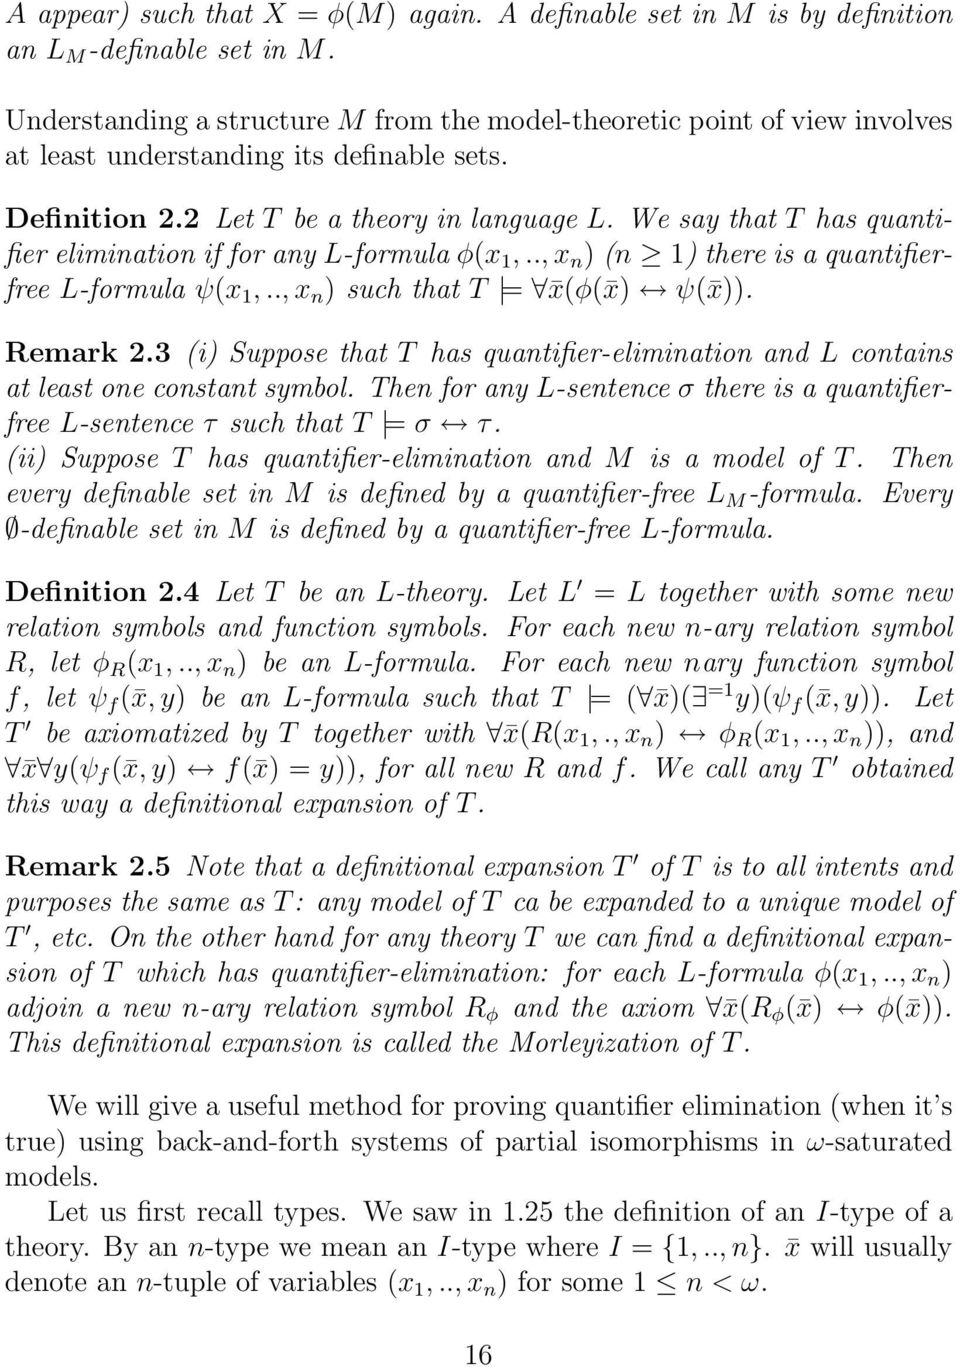 We say that T has quantifier elimination if for any L-formula φ(x 1,.., x n ) (n 1) there is a quantifierfree L-formula ψ(x 1,.., x n ) such that T = x(φ( x) ψ( x)). Remark 2.